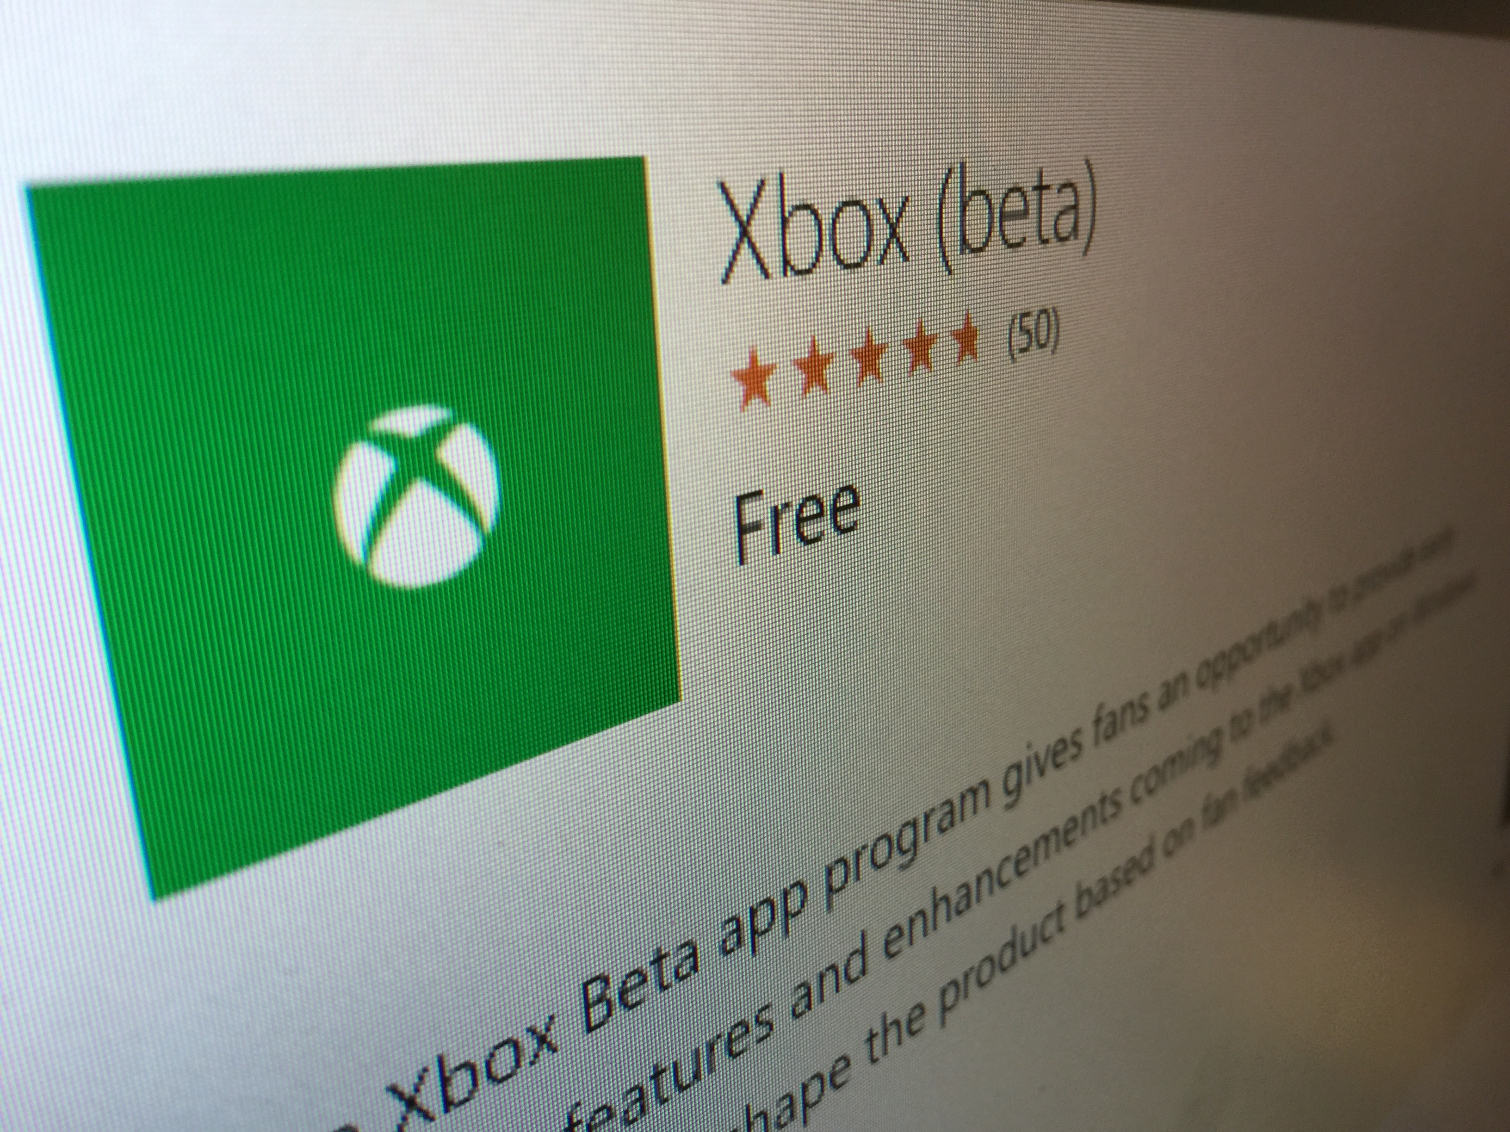 Xbox Beta App for Windows 10 Lets You Preview Features